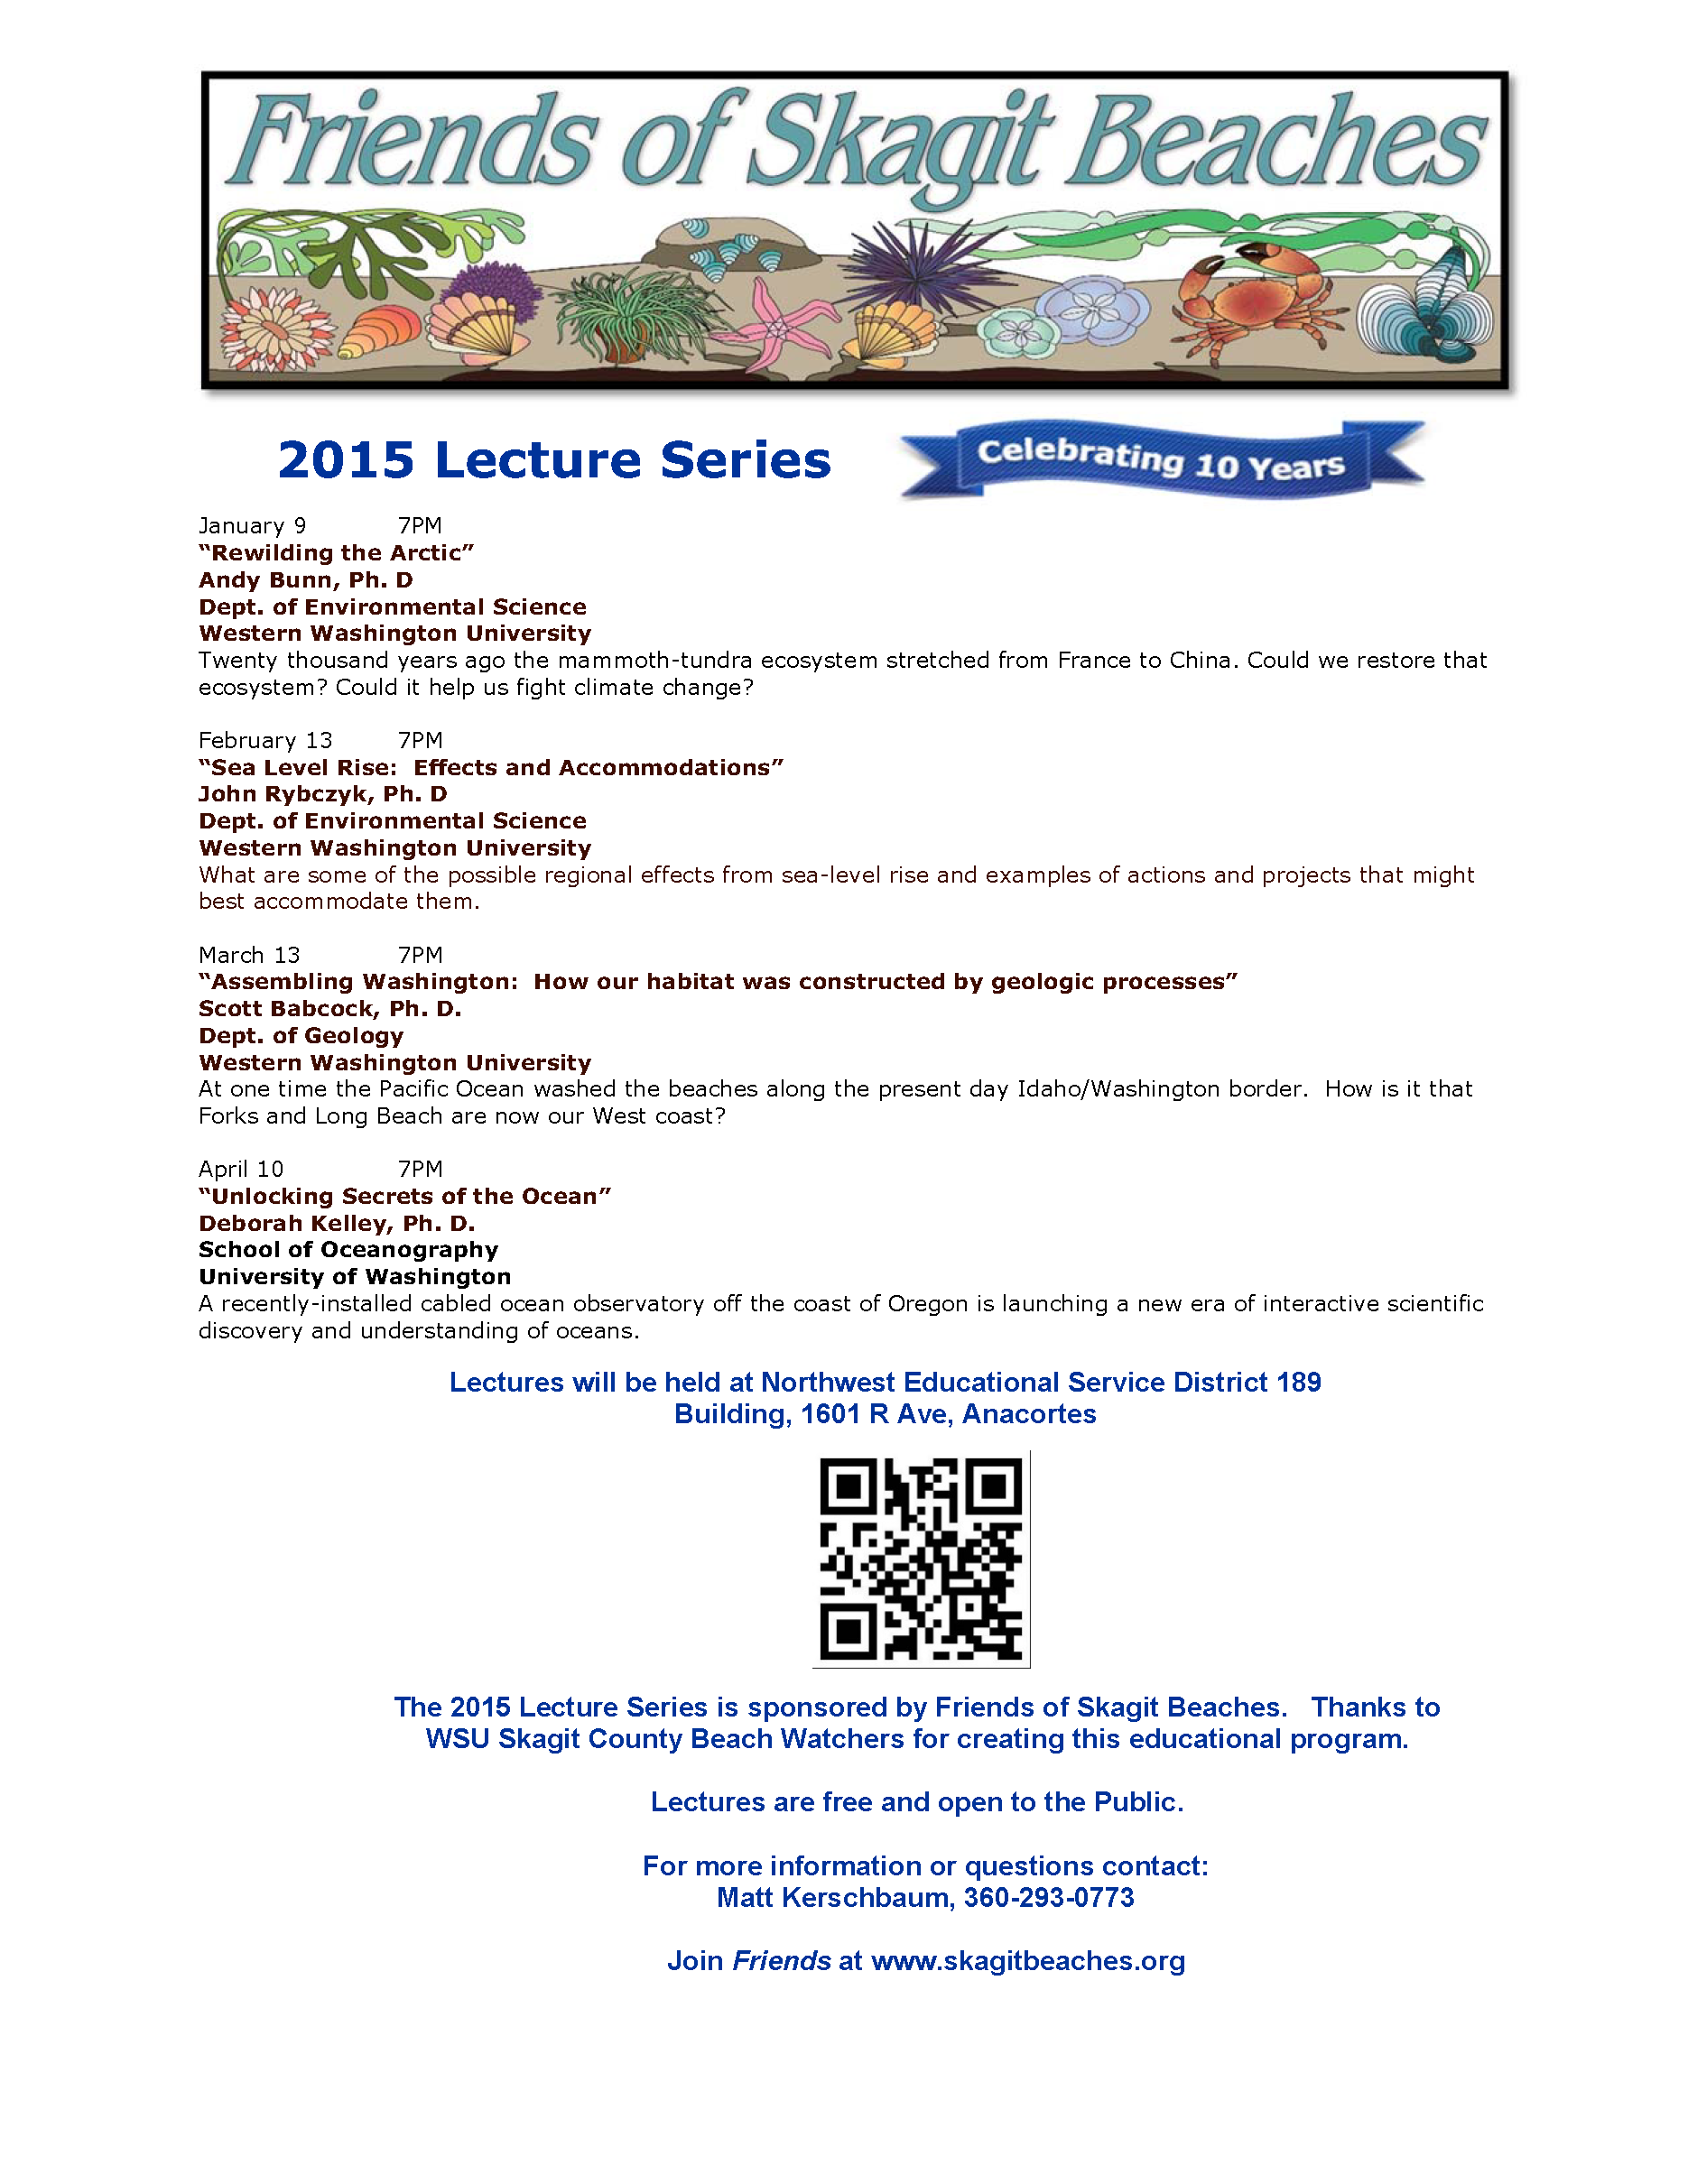 2015 LectureSeries